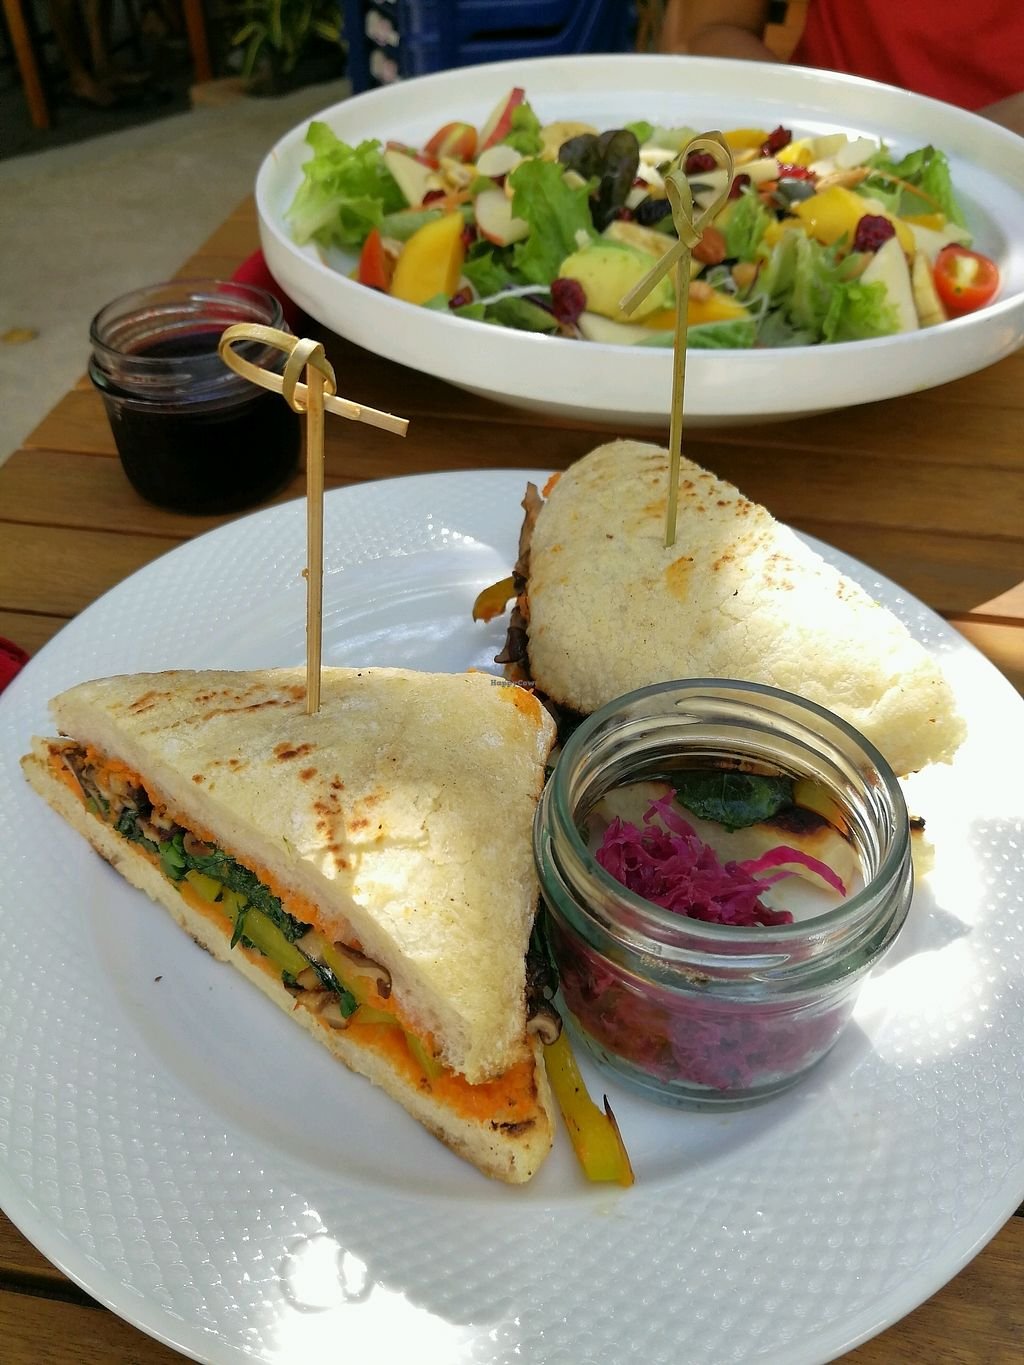 """Photo of Food4Thought  by <a href=""""/members/profile/RawChefYin"""">RawChefYin</a> <br/>mushroom and Kale sandwich  <br/> January 26, 2018  - <a href='/contact/abuse/image/71074/351143'>Report</a>"""